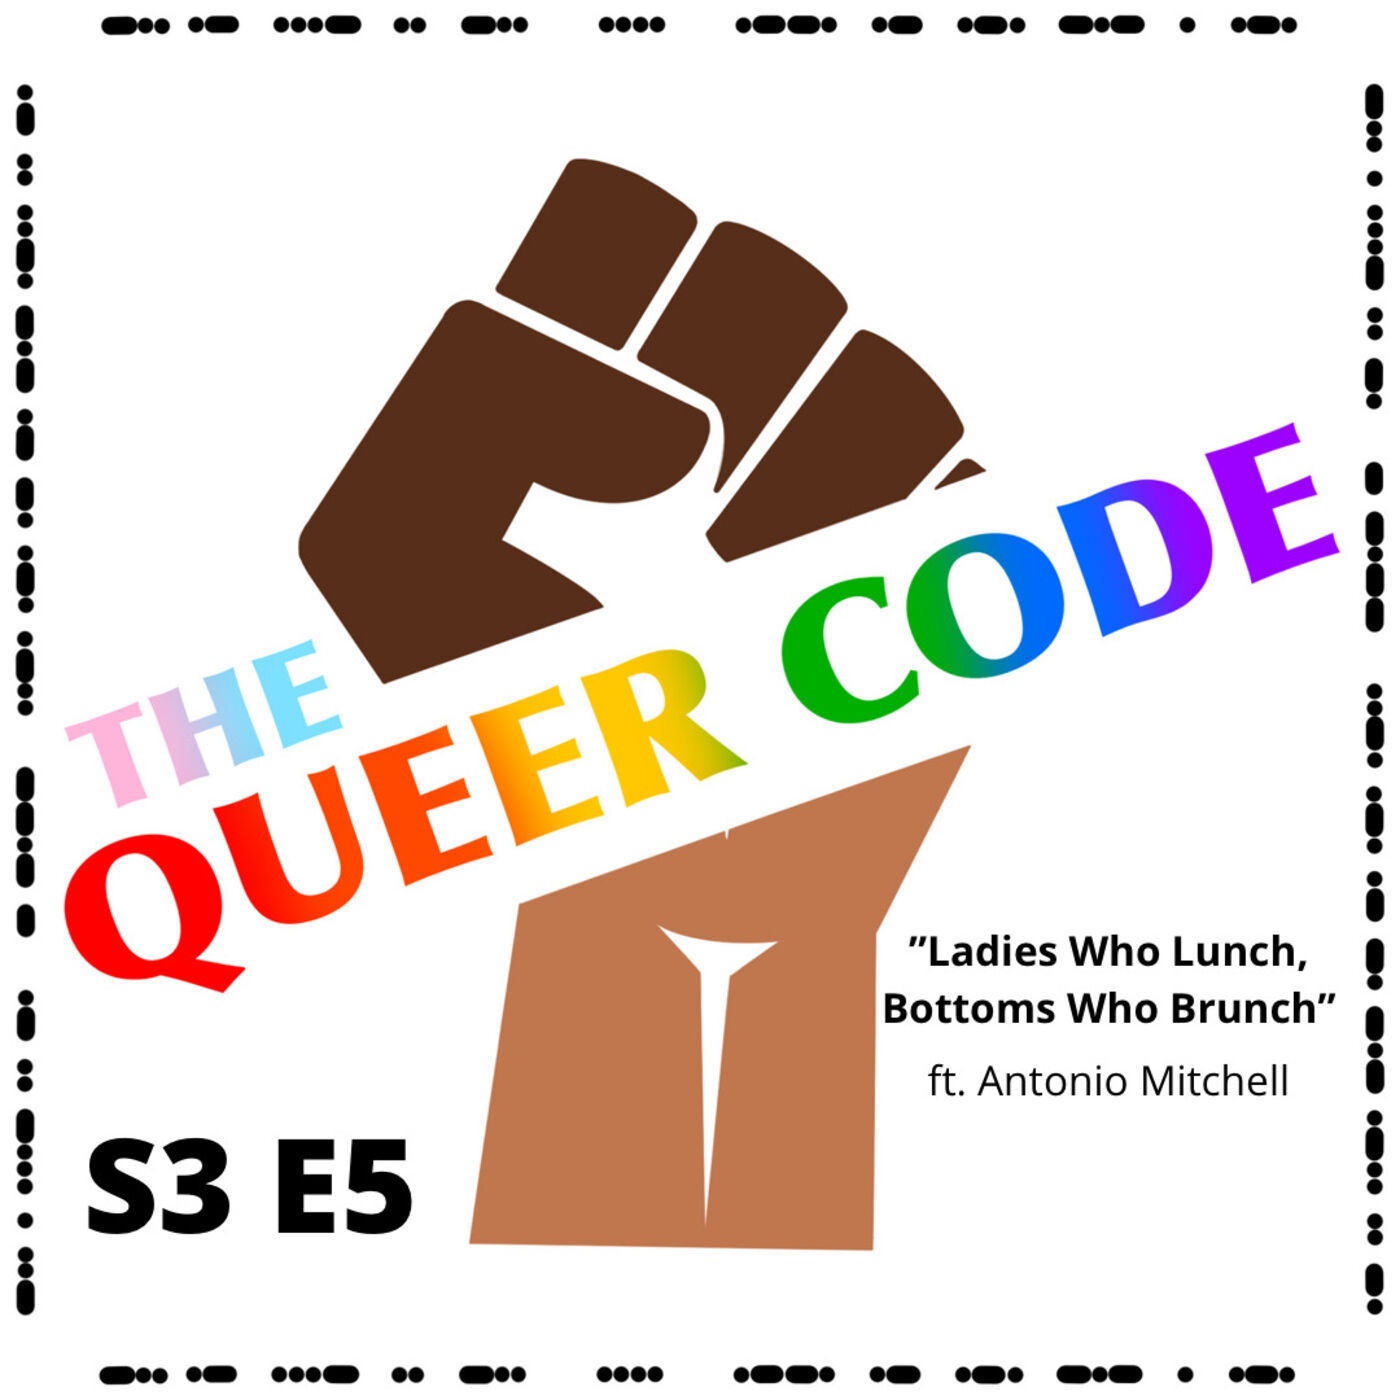 S3 E5 - Ladies Who Lunch, Bottoms Who Brunch (w/ Antonio D. Mitchell)